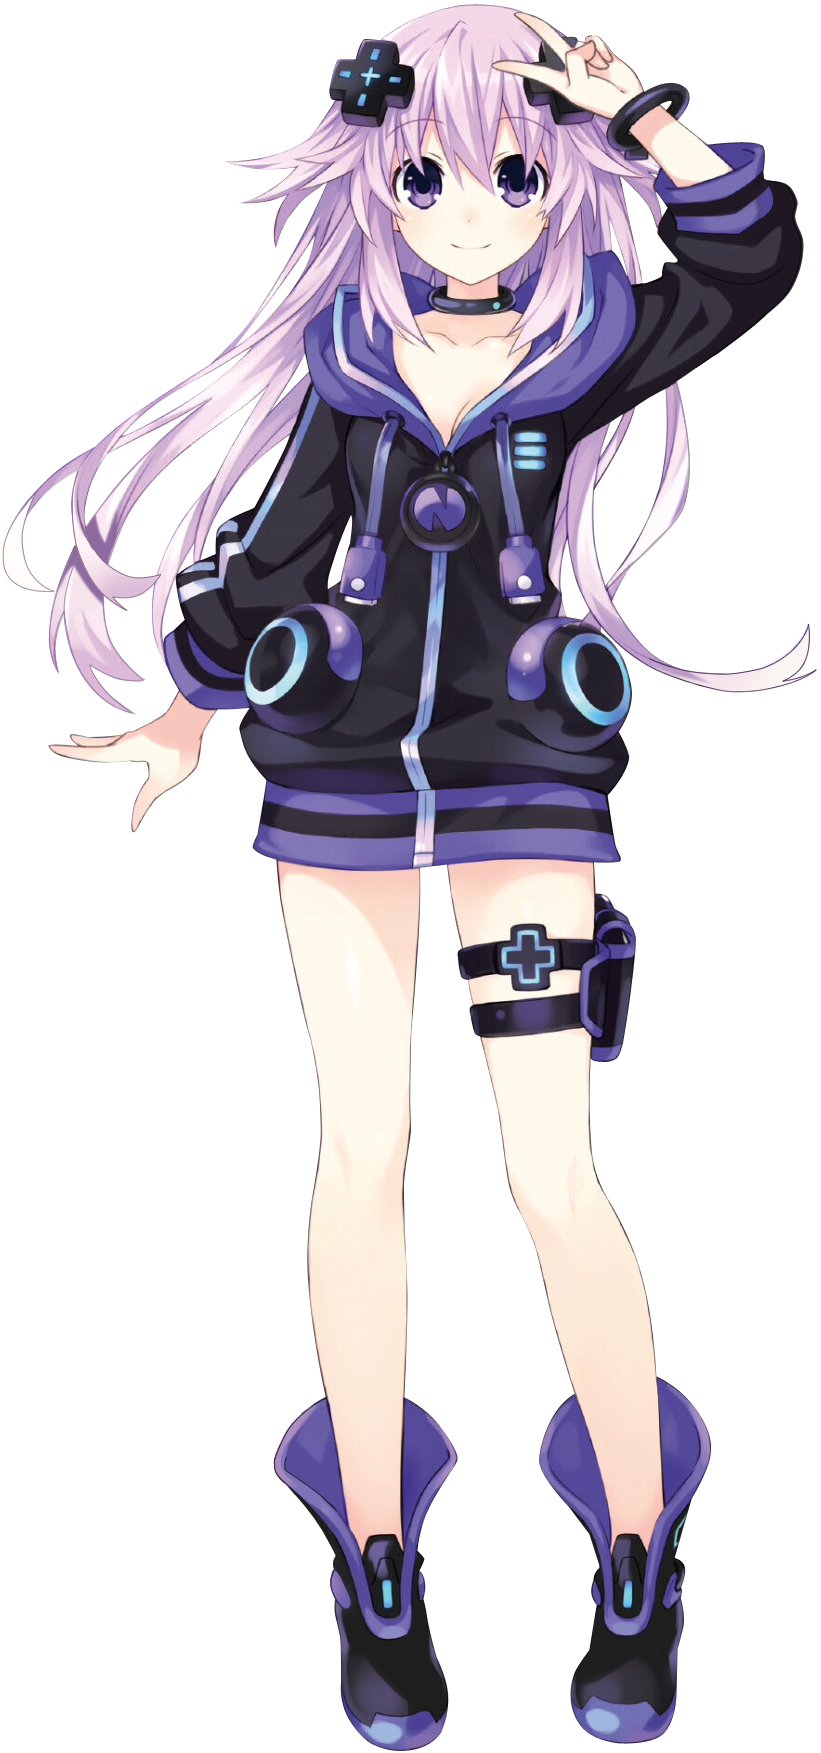 Neptune game png. Image adult hyperdimension neptunia